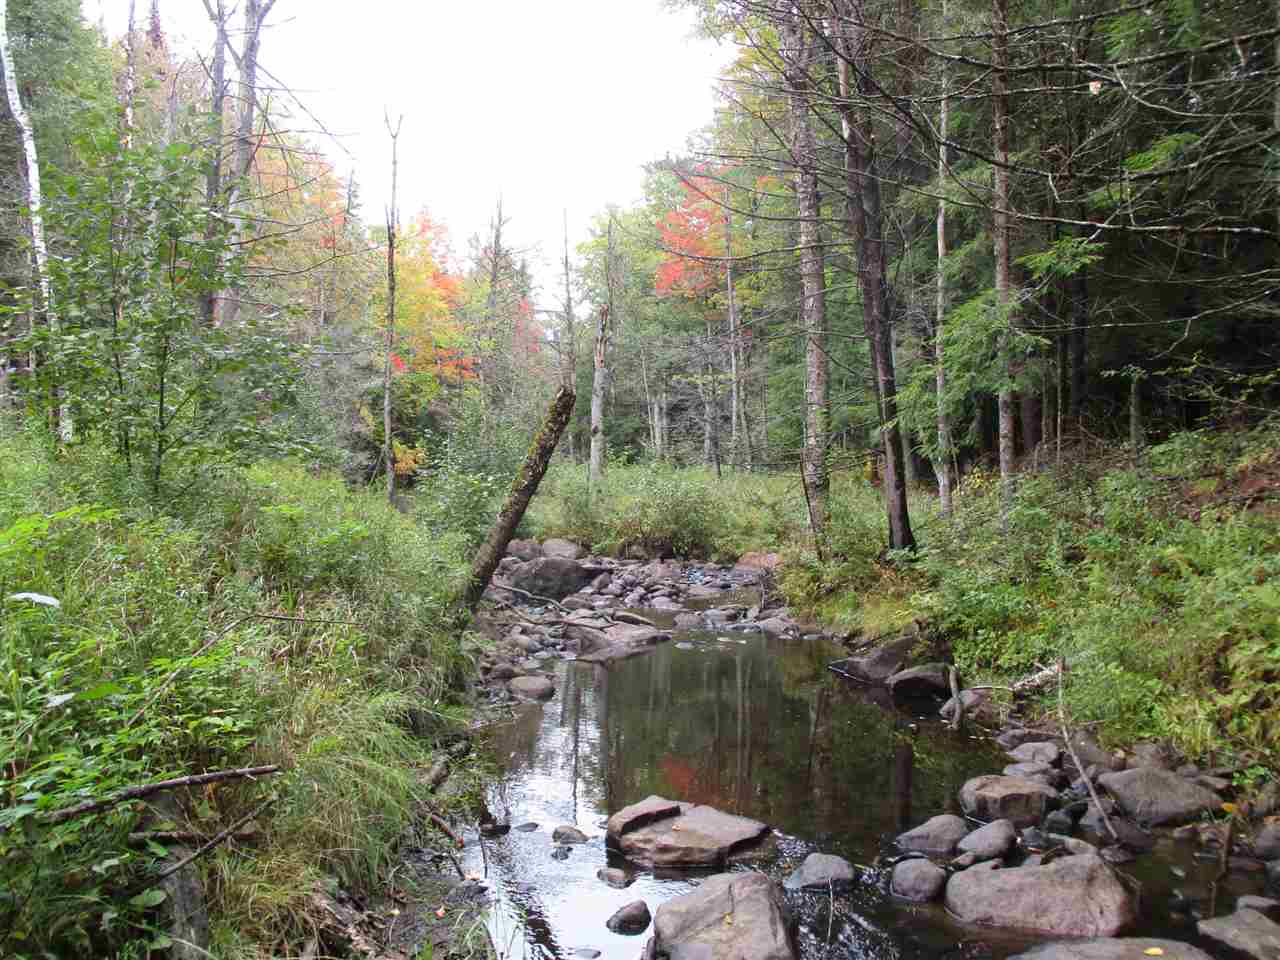 Keeseville image 2